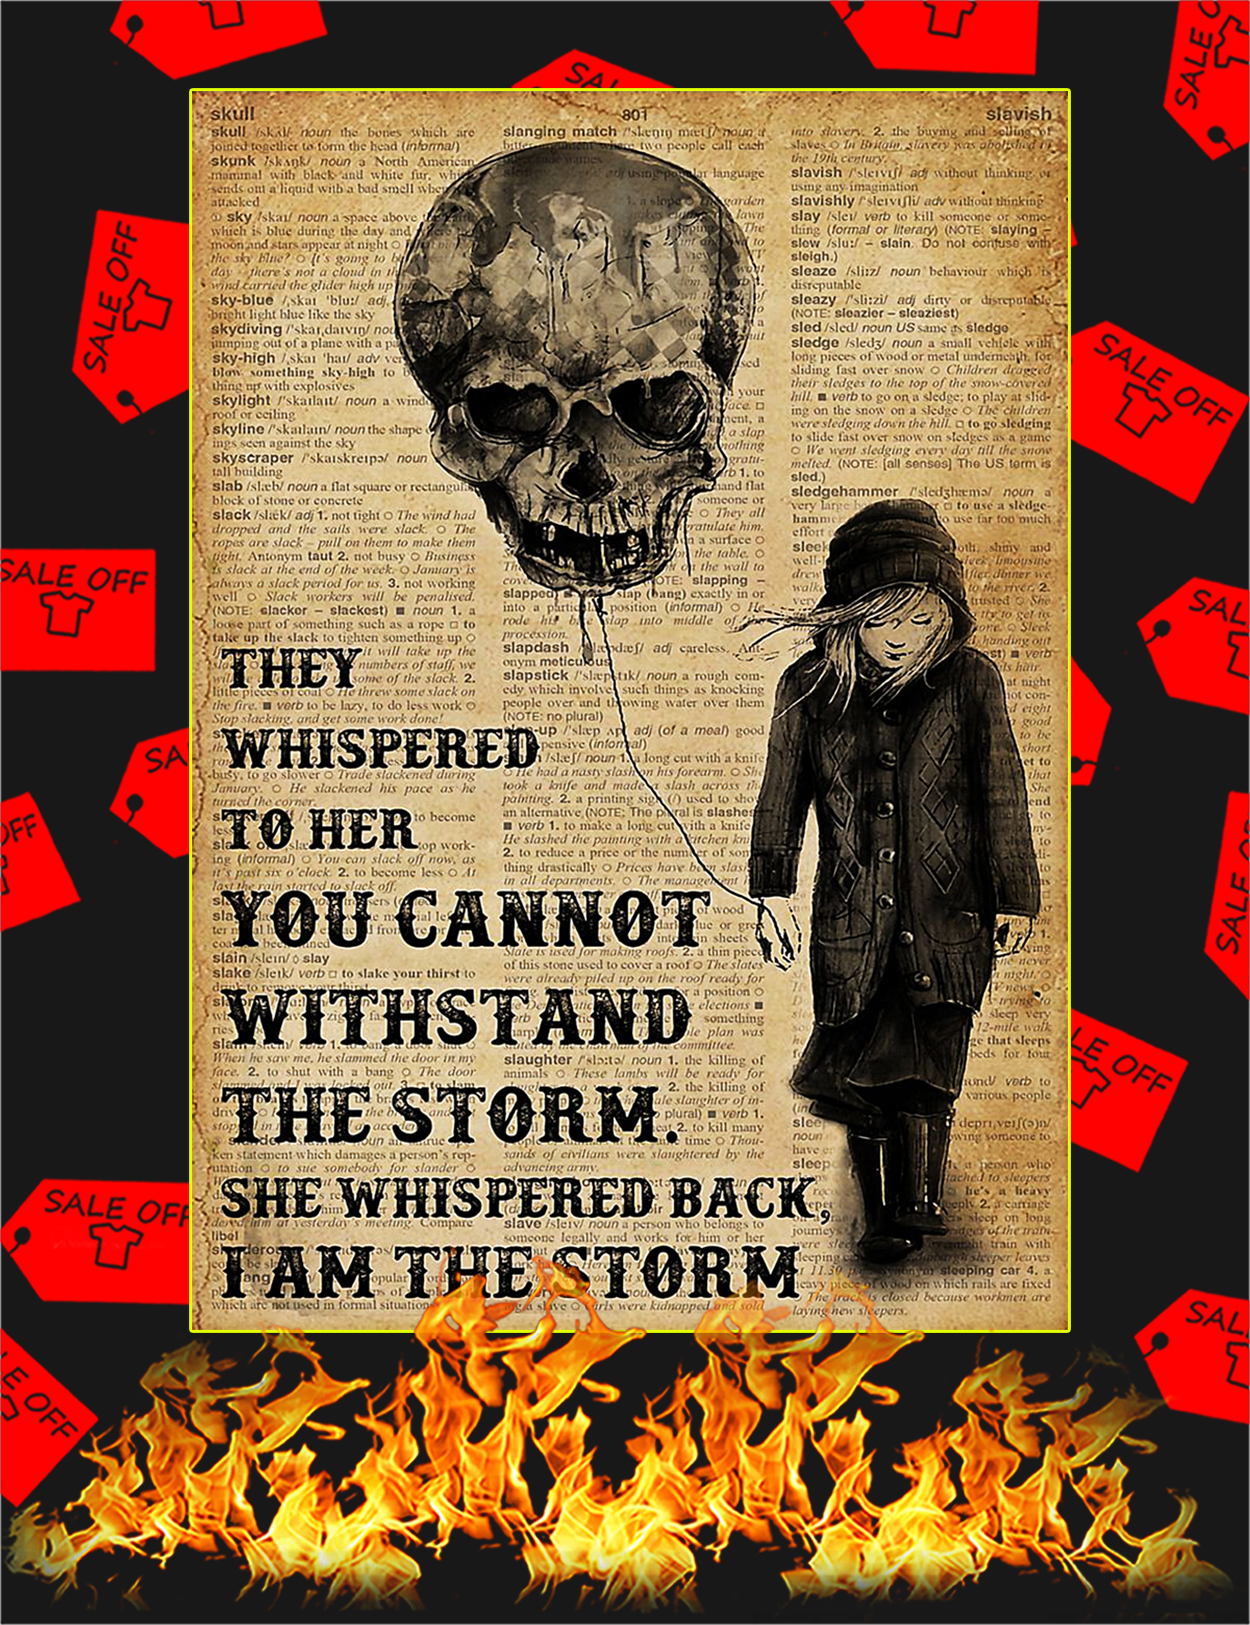 Balloon skull I am the storm poster - A3